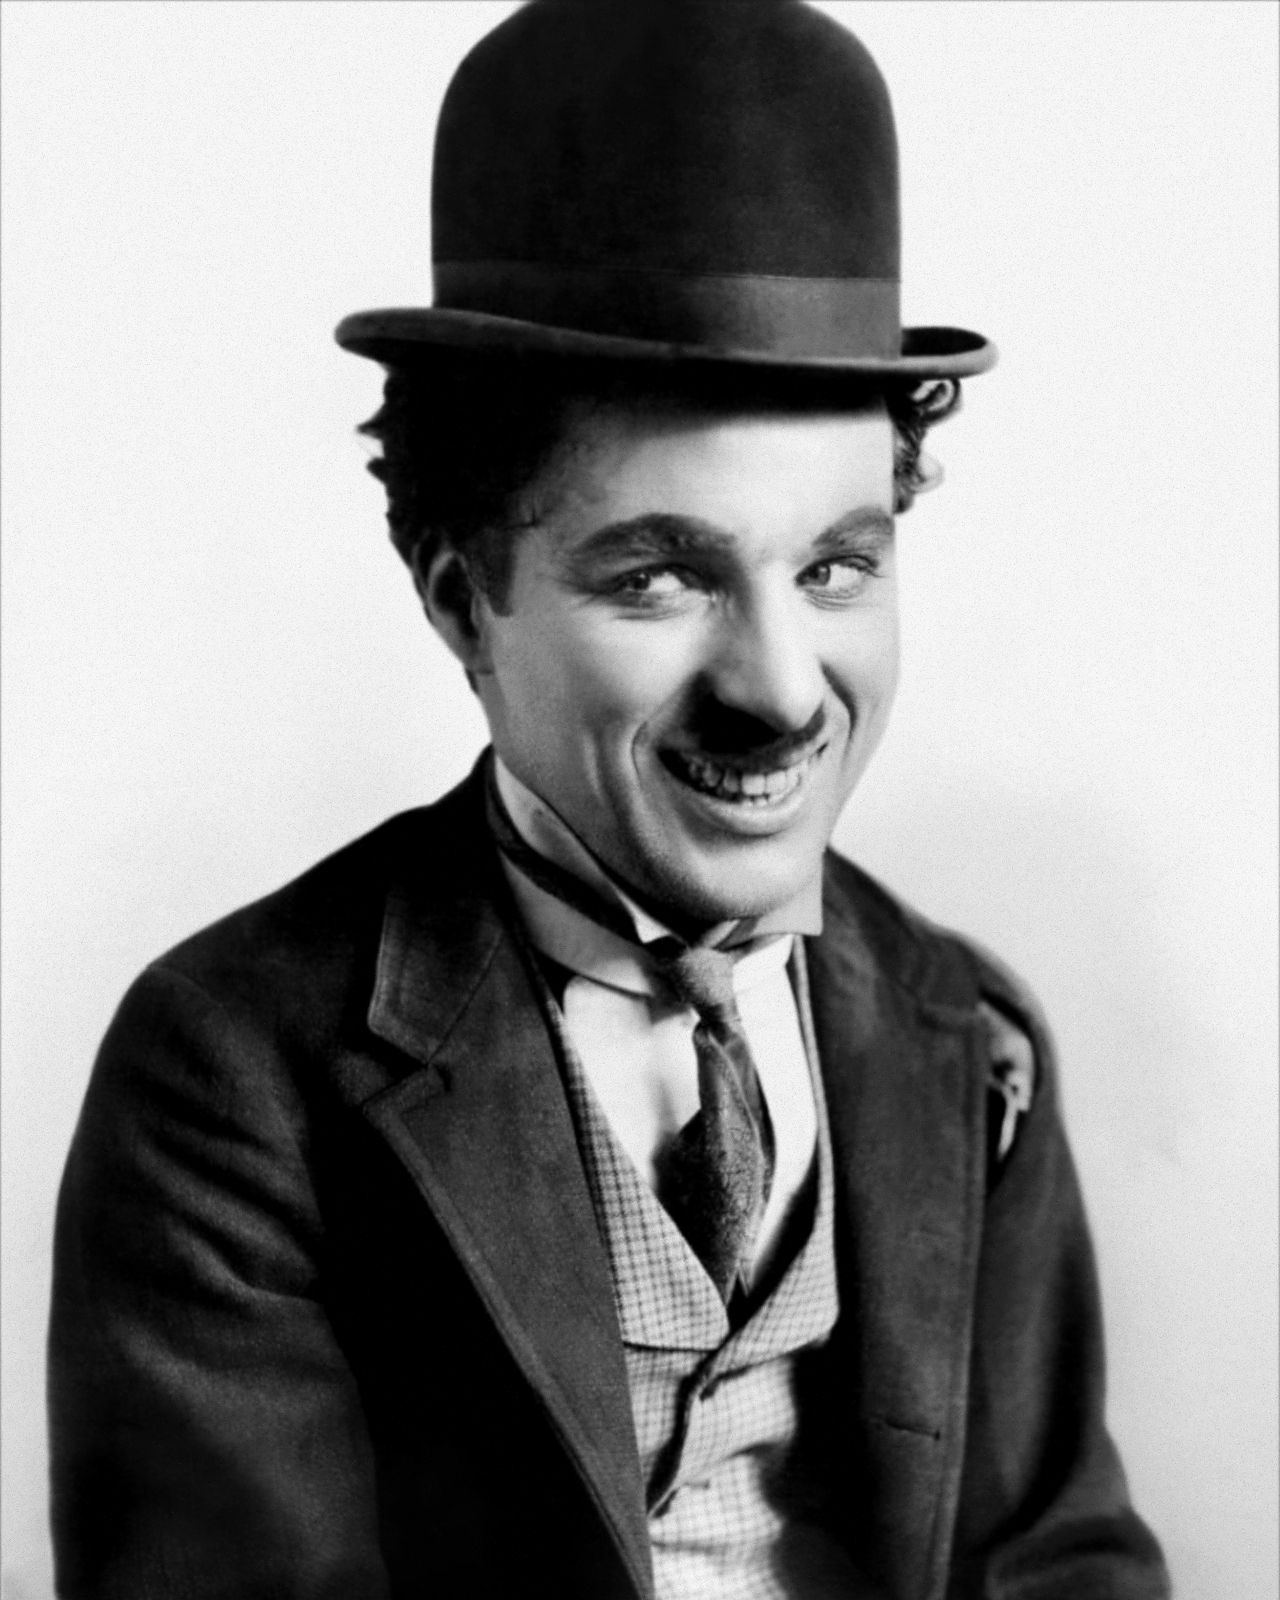 https://i1.wp.com/upload.wikimedia.org/wikipedia/commons/0/00/Charlie_Chaplin.jpg